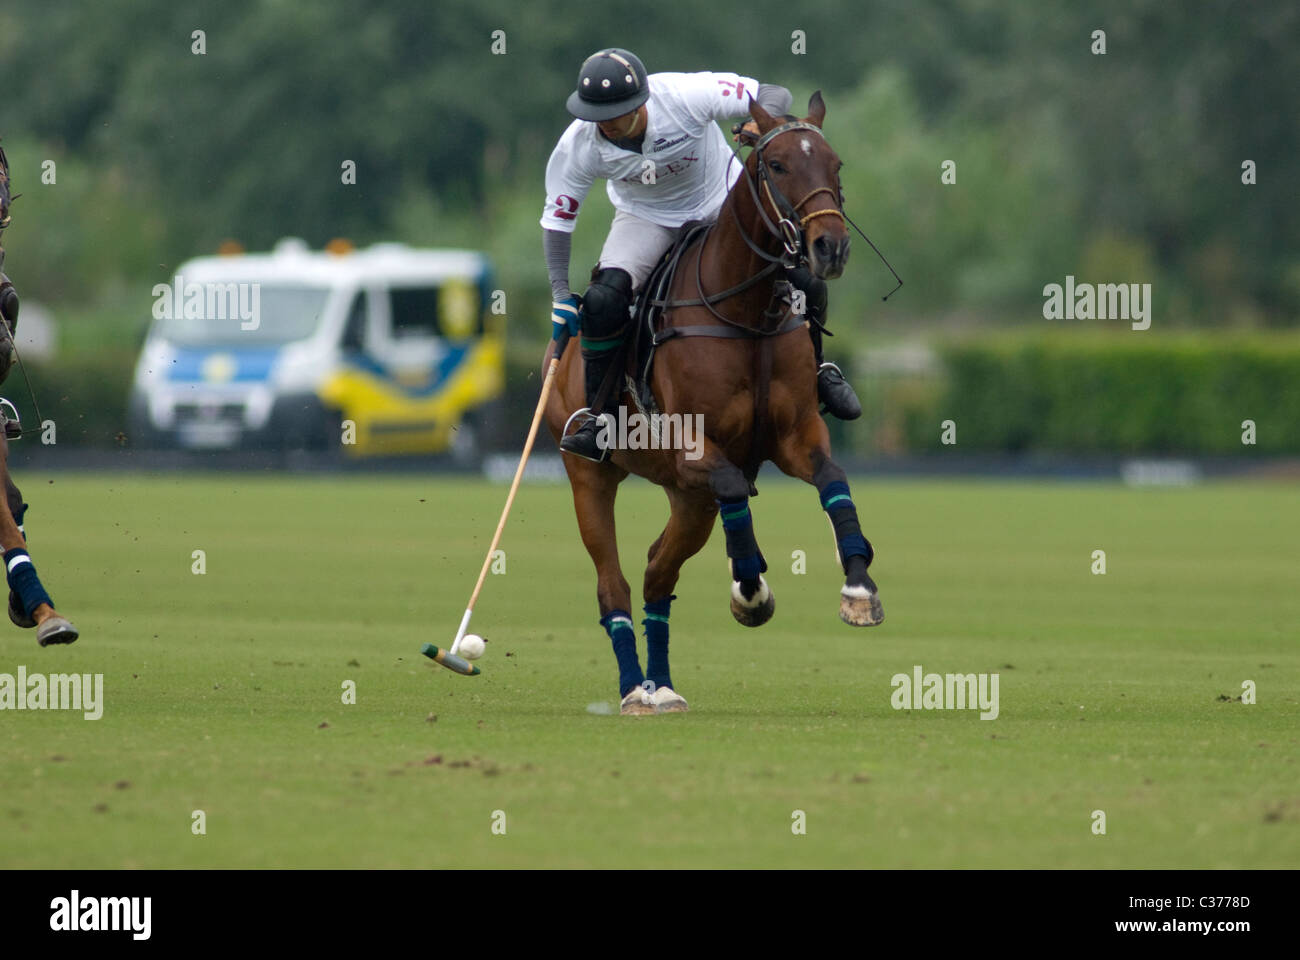 Polo player knocking  ball during match - Stock Image